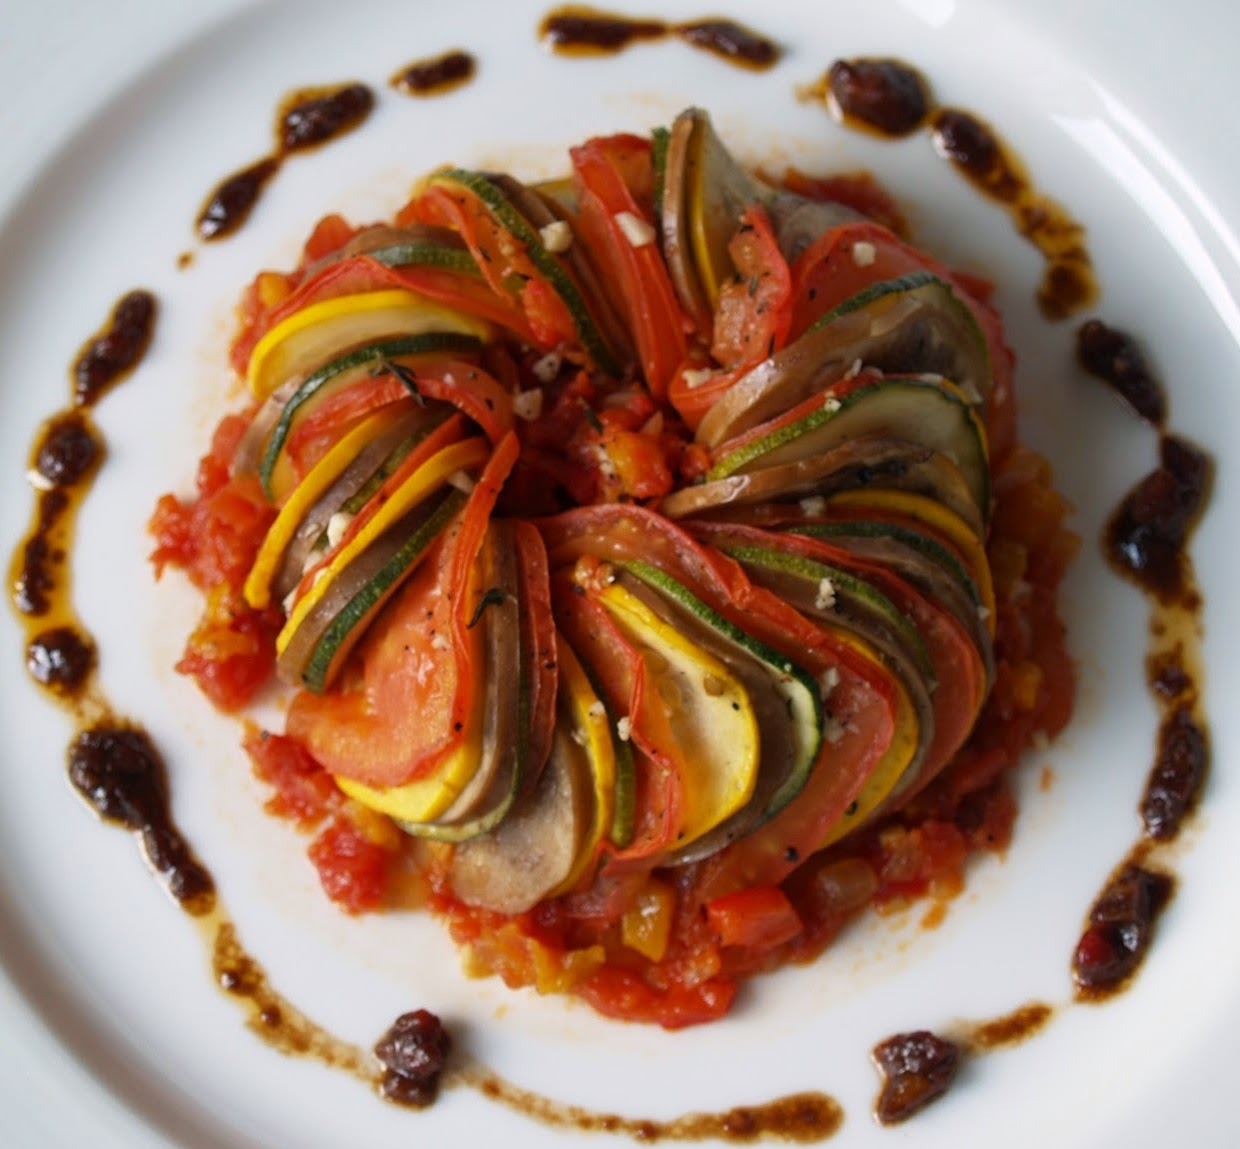 French ratatouille recipe easy make recipes tab french ratatouille recipe easy make forumfinder Choice Image